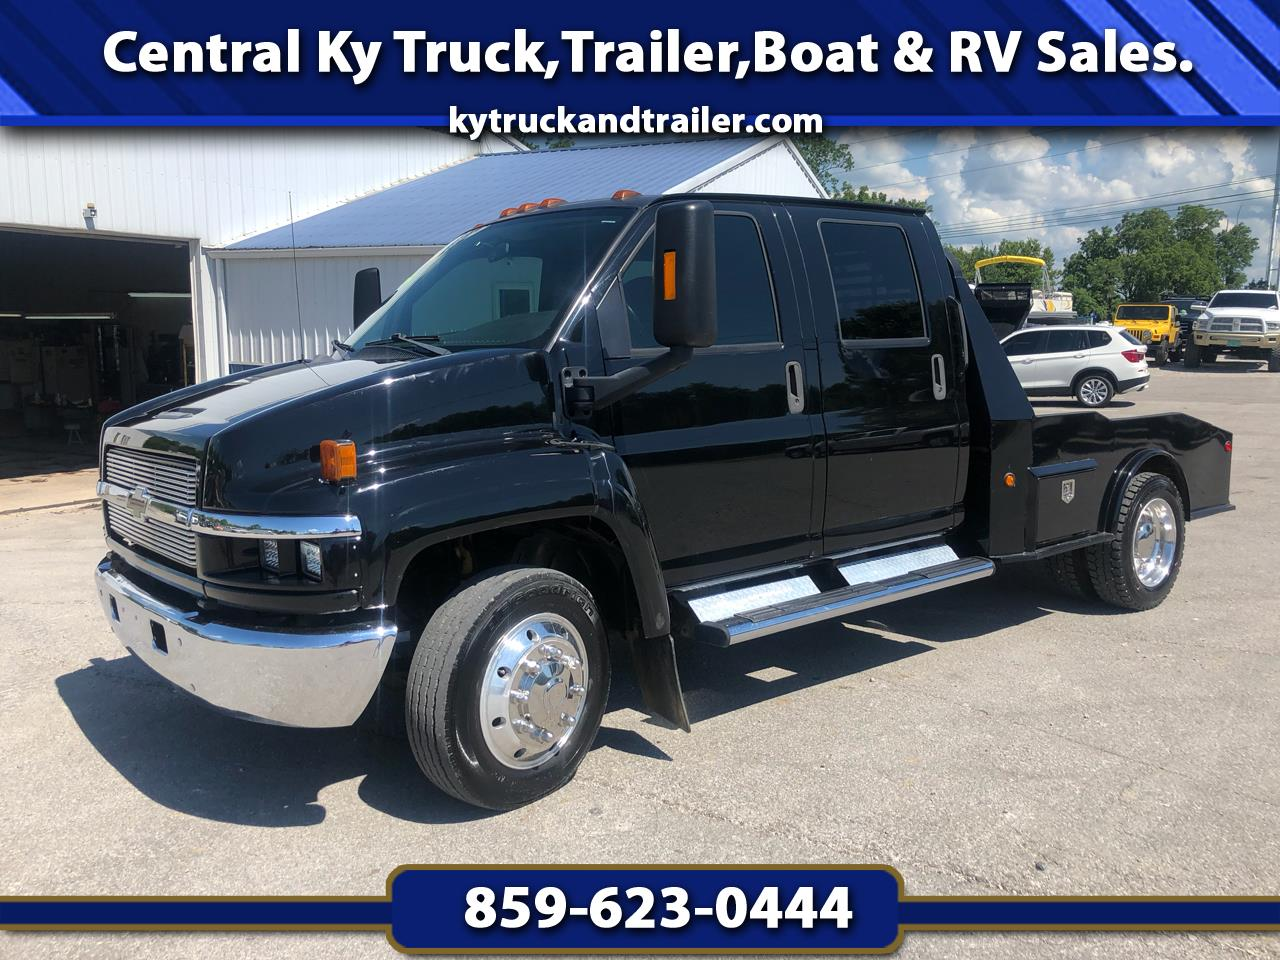 2005 Chevrolet C4500 Crew Cab Conversion